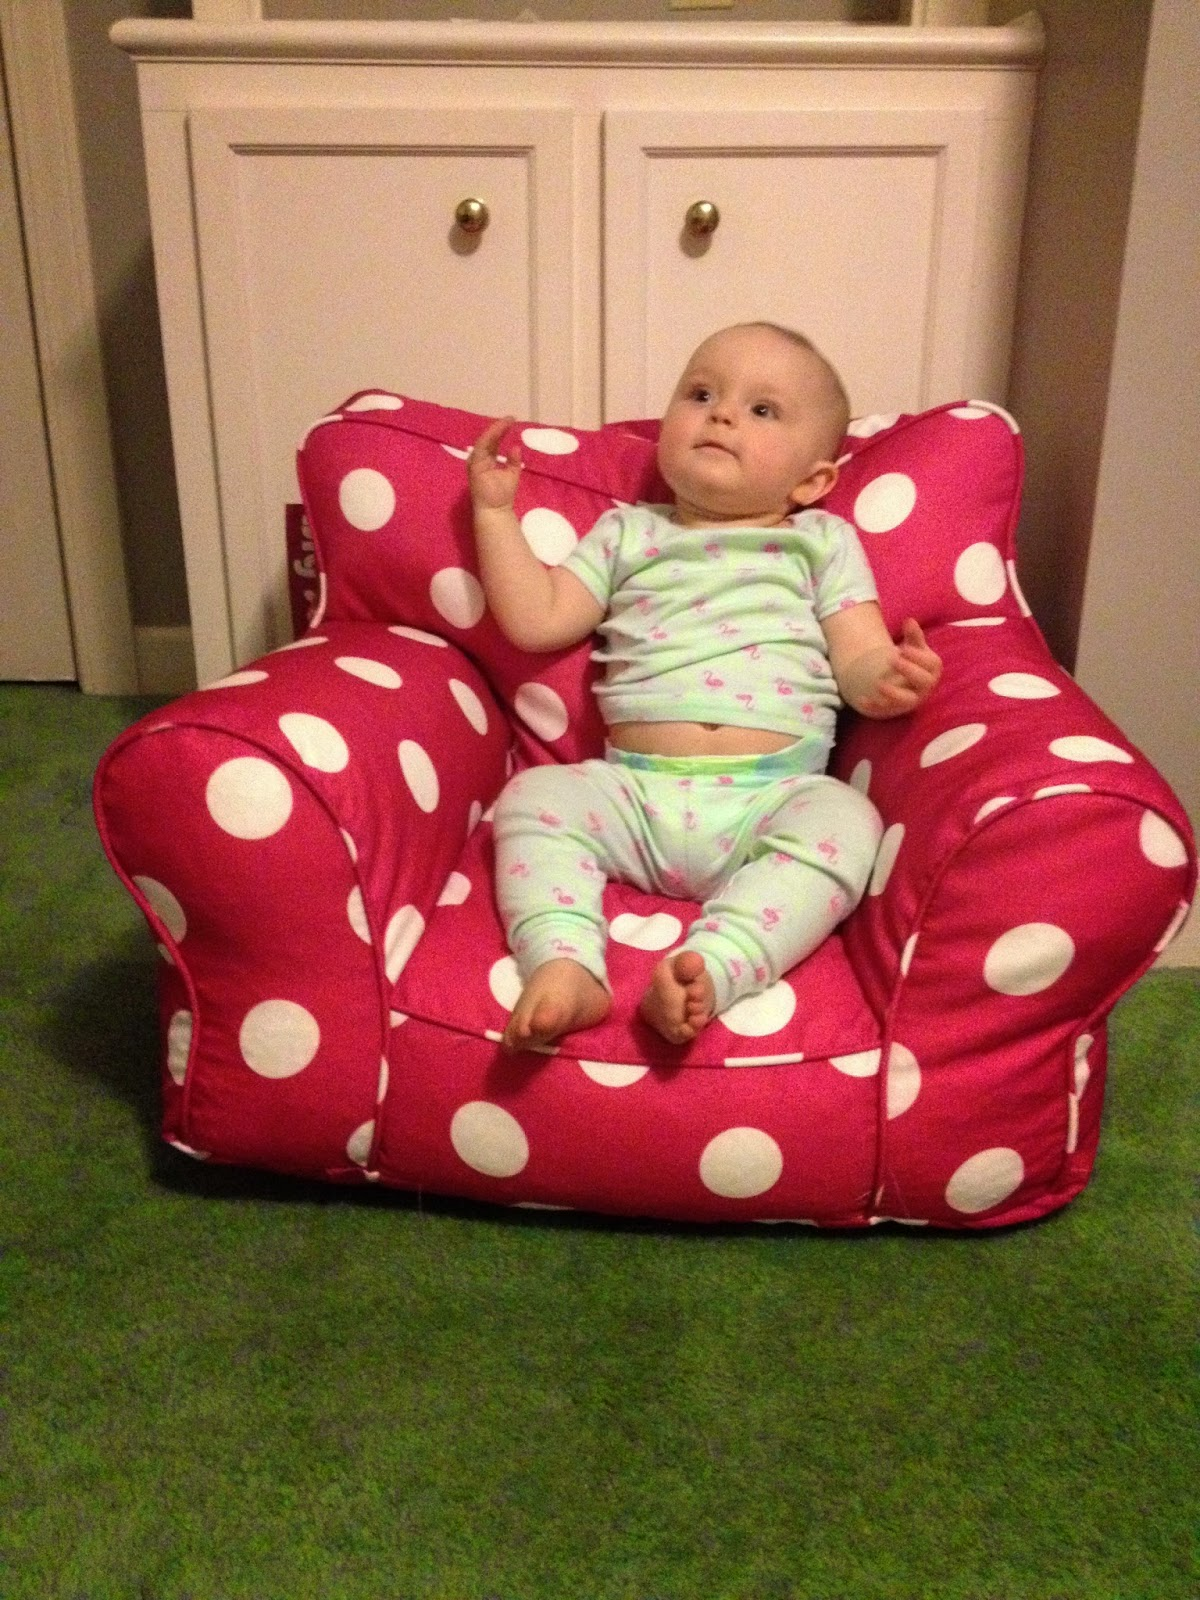 Polka Dotty Place Pbk Knock Off Anywhere Chair